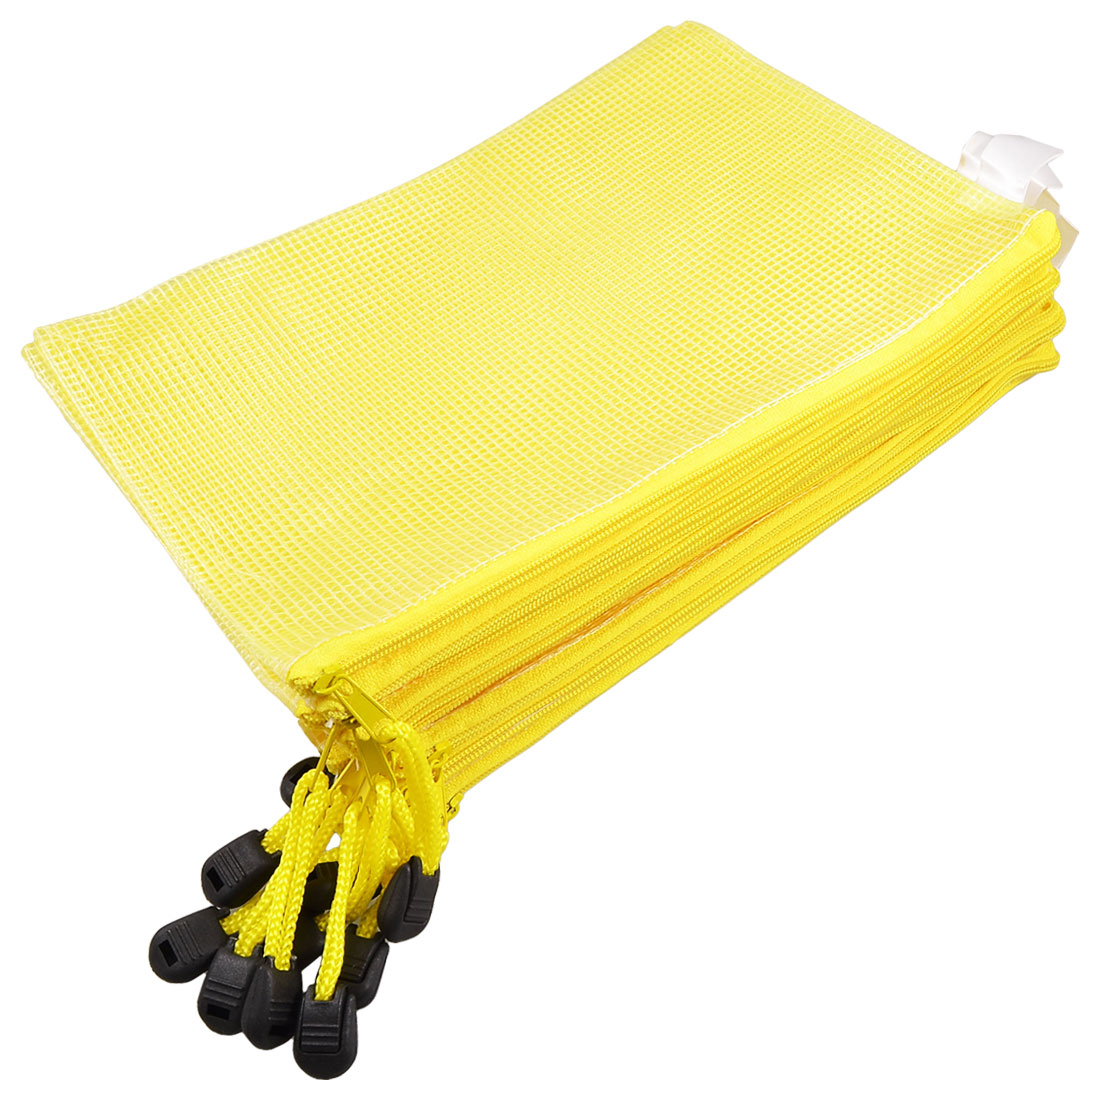 Student Plastic Zipper Closure A5 Size Paper File Holder Bag Yellow 10pcs